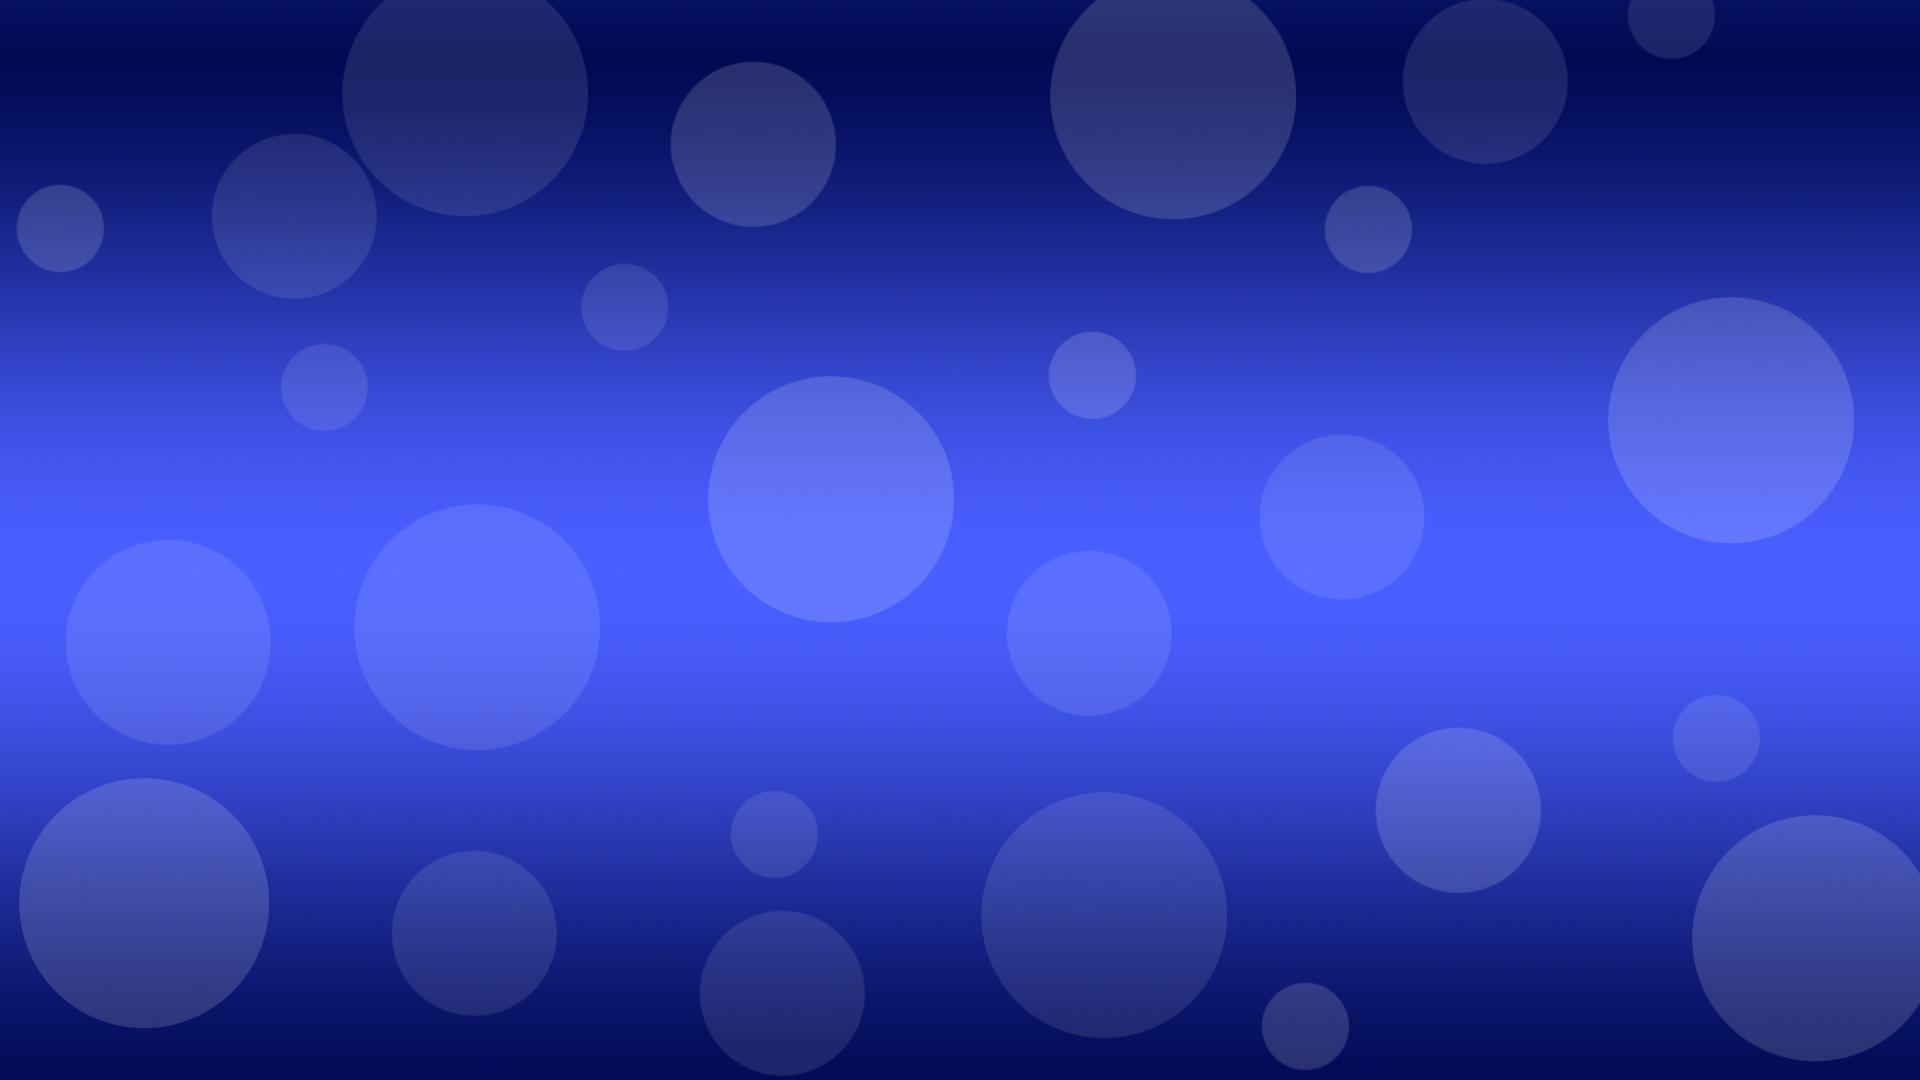 Dots Abstract wallpapers HD quality